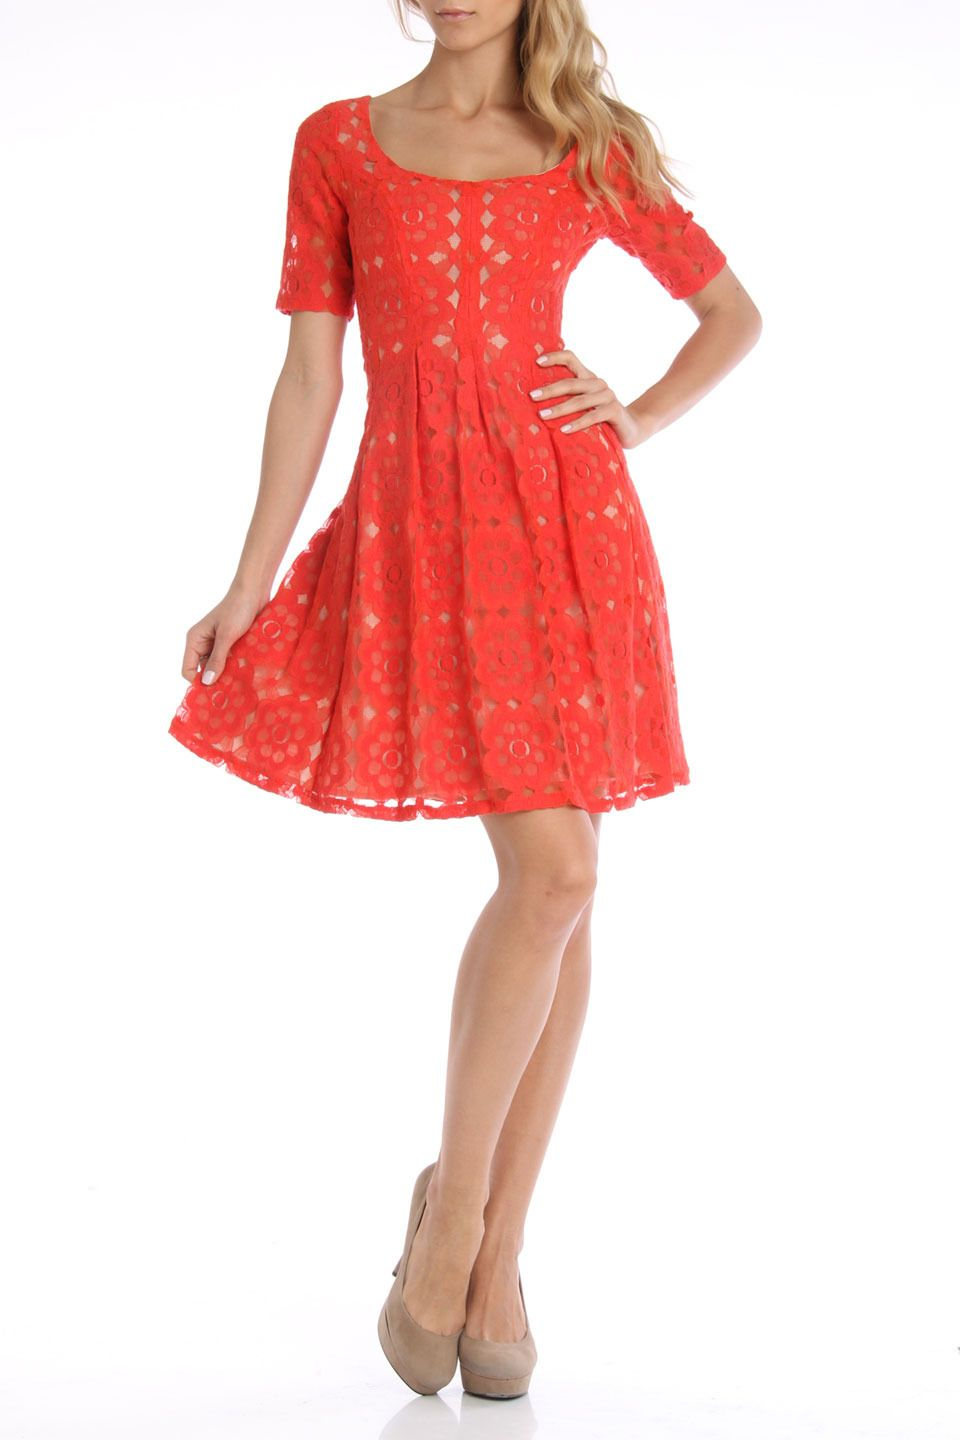 Nine West Floral Stamp Lace Flared Dress in Tangerine